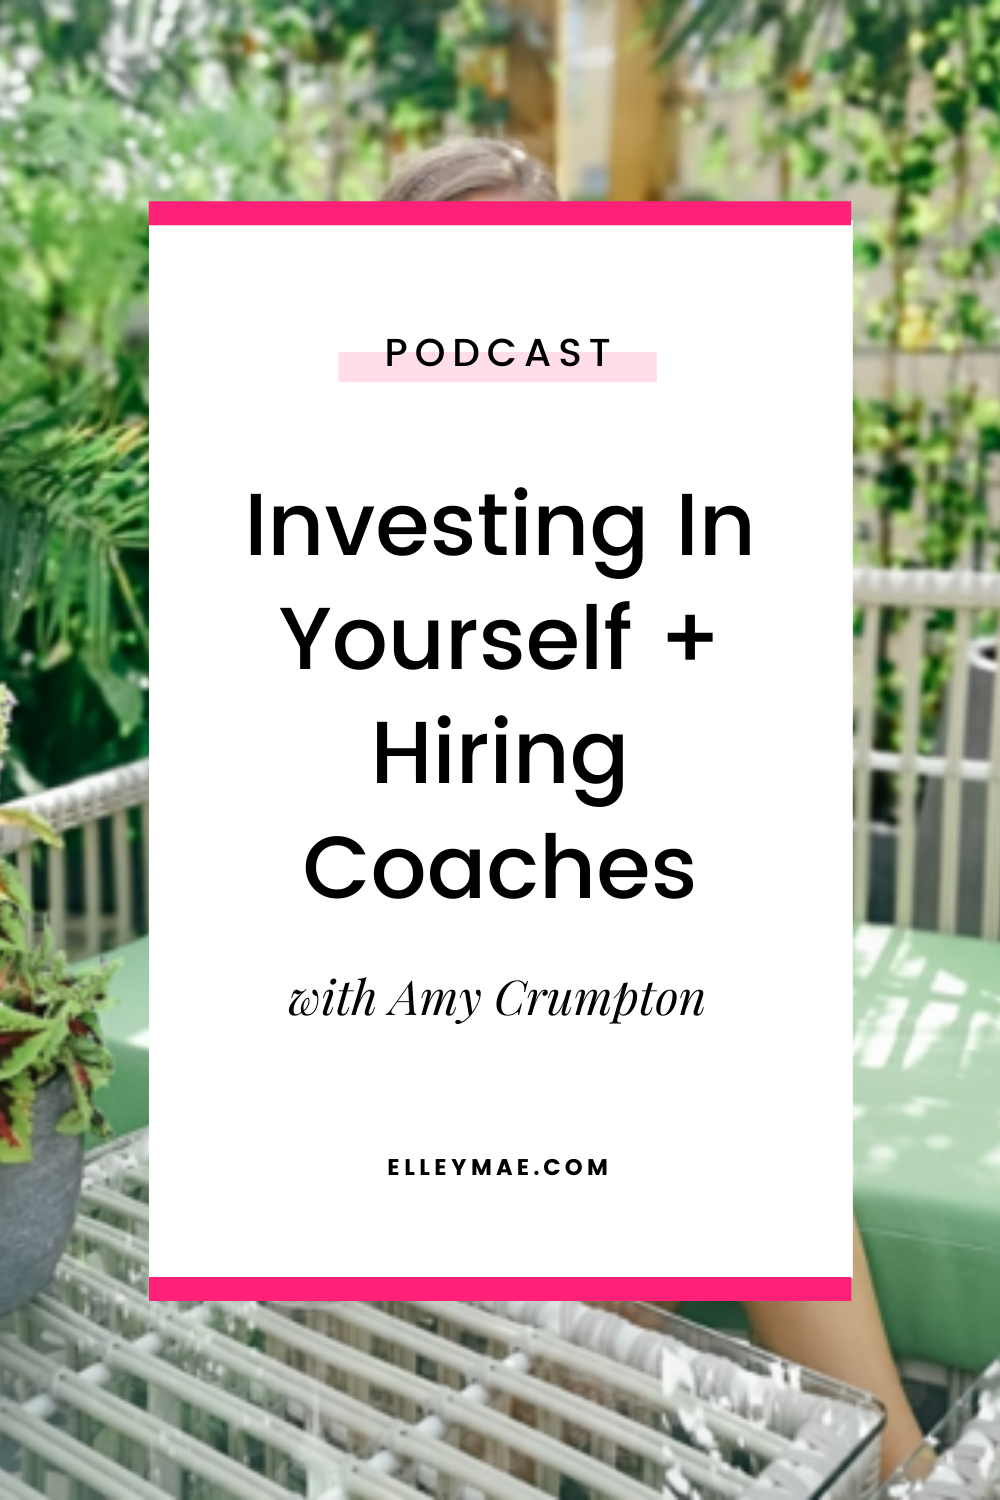 Investing In Yourself + Hiring Coaches